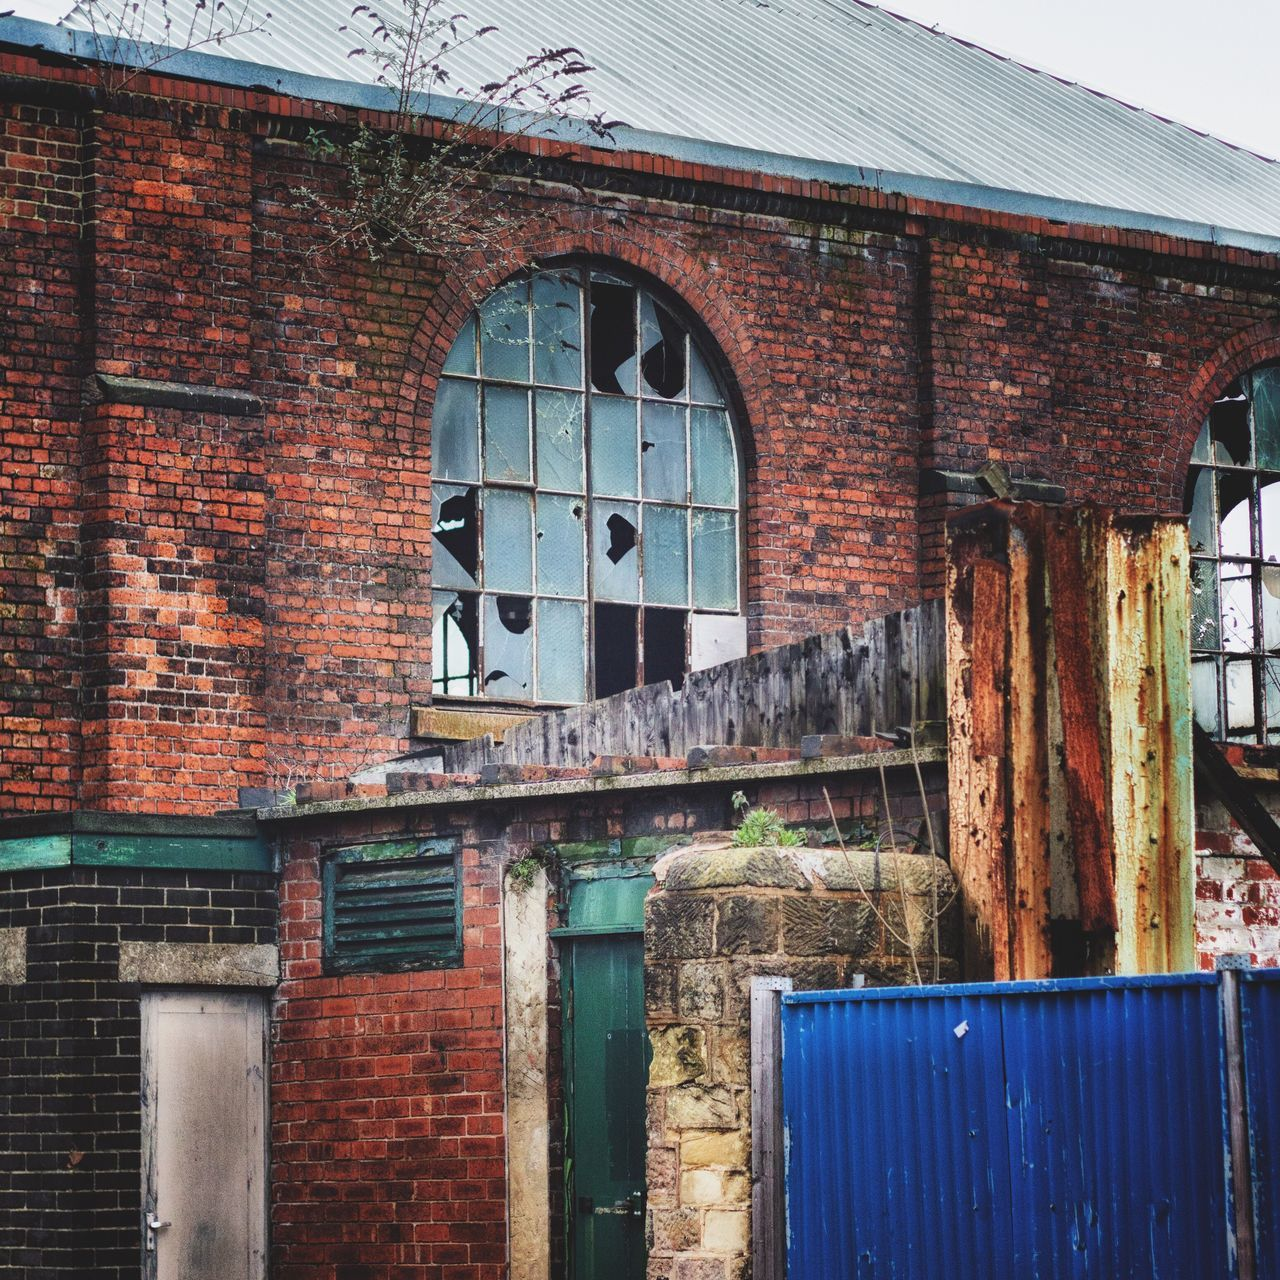 Building Exterior Built Structure No People Outdoors Day Architecture The Places I've Been Today Abandoned Places Derelict Urbex Urbexphotography Urbexexplorer Canonphotography Square Format Lovers Colour United Kingdom